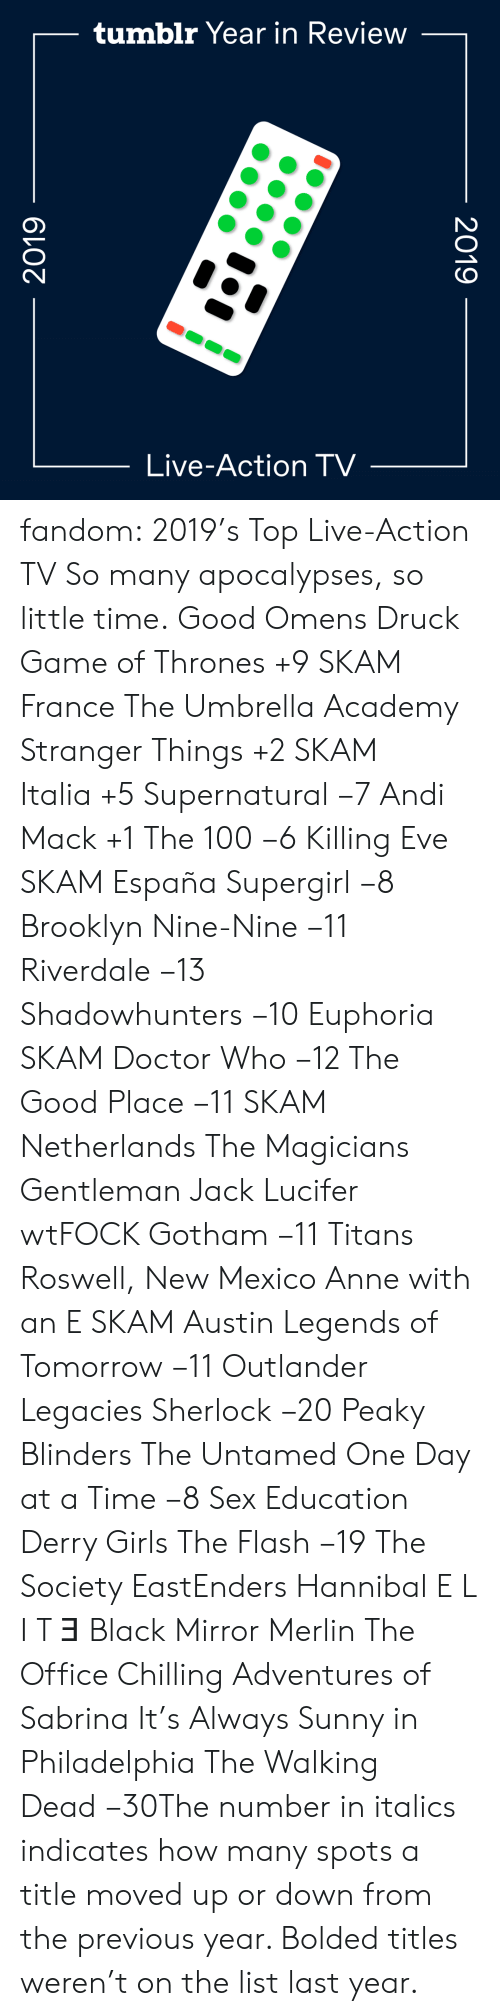 Doctor, EastEnders, and Game of Thrones: tumblr Year in Review  Live-Action TV-  2019  2019 fandom:  2019's Top Live-Action TV  So many apocalypses, so little time.  Good Omens  Druck  Game of Thrones +9  SKAM France  The Umbrella Academy  Stranger Things +2  SKAM Italia +5  Supernatural −7  Andi Mack +1  The 100 −6  Killing Eve   SKAM España  Supergirl −8  Brooklyn Nine-Nine −11  Riverdale −13  Shadowhunters −10  Euphoria  SKAM  Doctor Who −12  The Good Place −11  SKAM Netherlands  The Magicians  Gentleman Jack  Lucifer  wtFOCK  Gotham −11  Titans  Roswell, New Mexico  Anne with an E  SKAM Austin  Legends of Tomorrow −11  Outlander  Legacies  Sherlock −20  Peaky Blinders  The Untamed  One Day at a Time −8  Sex Education  Derry Girls  The Flash −19  The Society  EastEnders  Hannibal  E L I T Ǝ  Black Mirror  Merlin  The Office  Chilling Adventures of Sabrina  It's Always Sunny in Philadelphia The Walking Dead −30The number in italics indicates how many spots a title moved up or down from the previous year. Bolded titles weren't on the list last year.